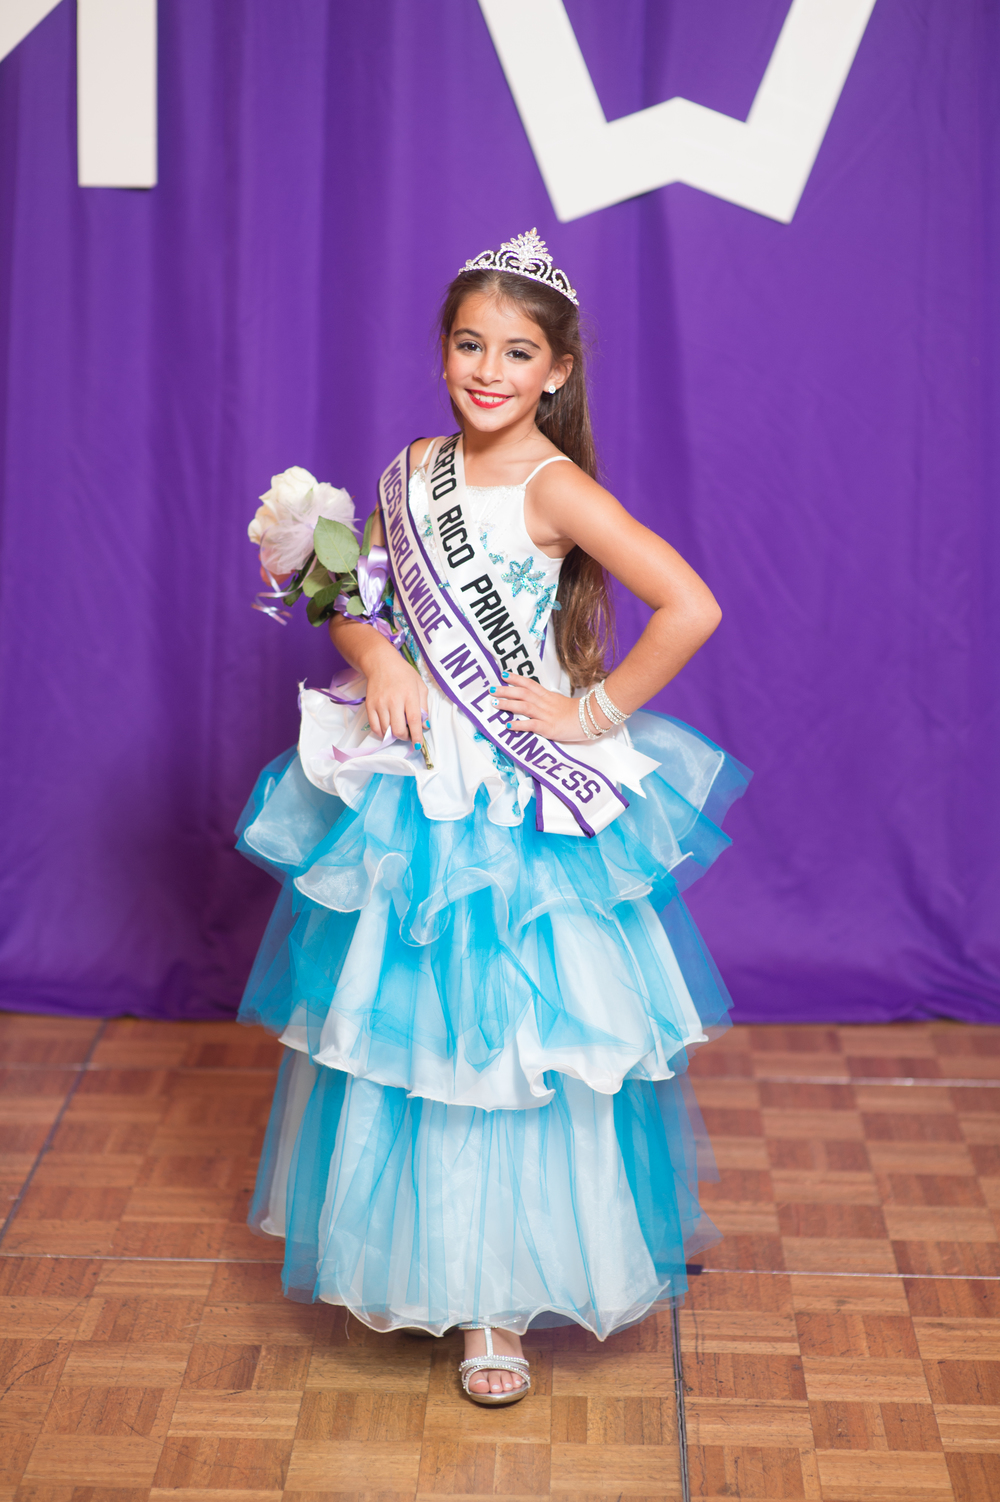 sofia barbeito miss worldwide international princess - puerto Rico 2014